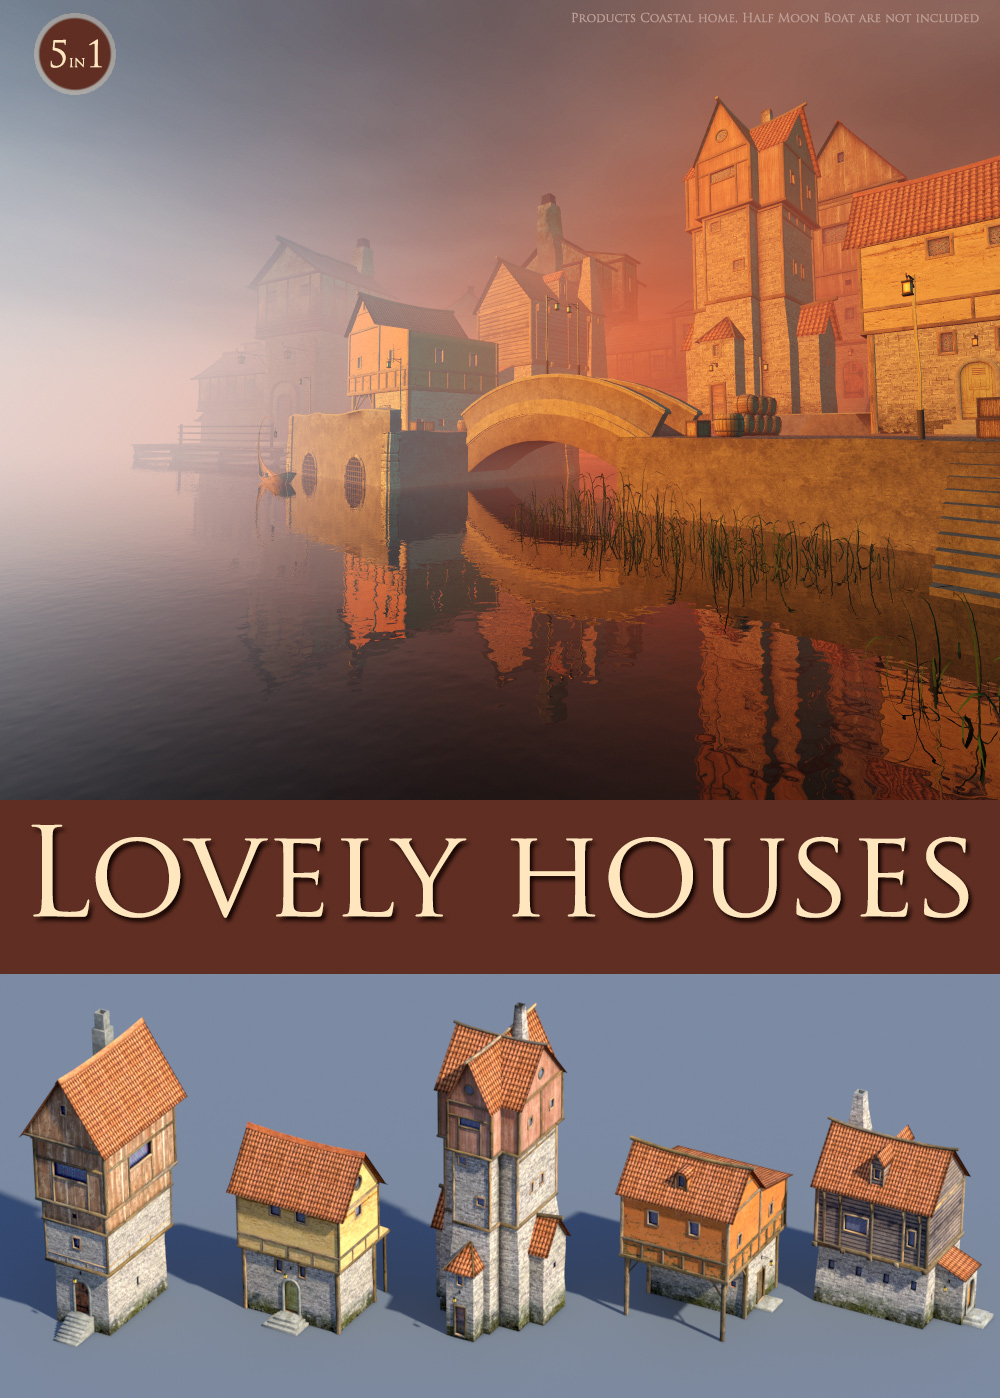 Lovely houses